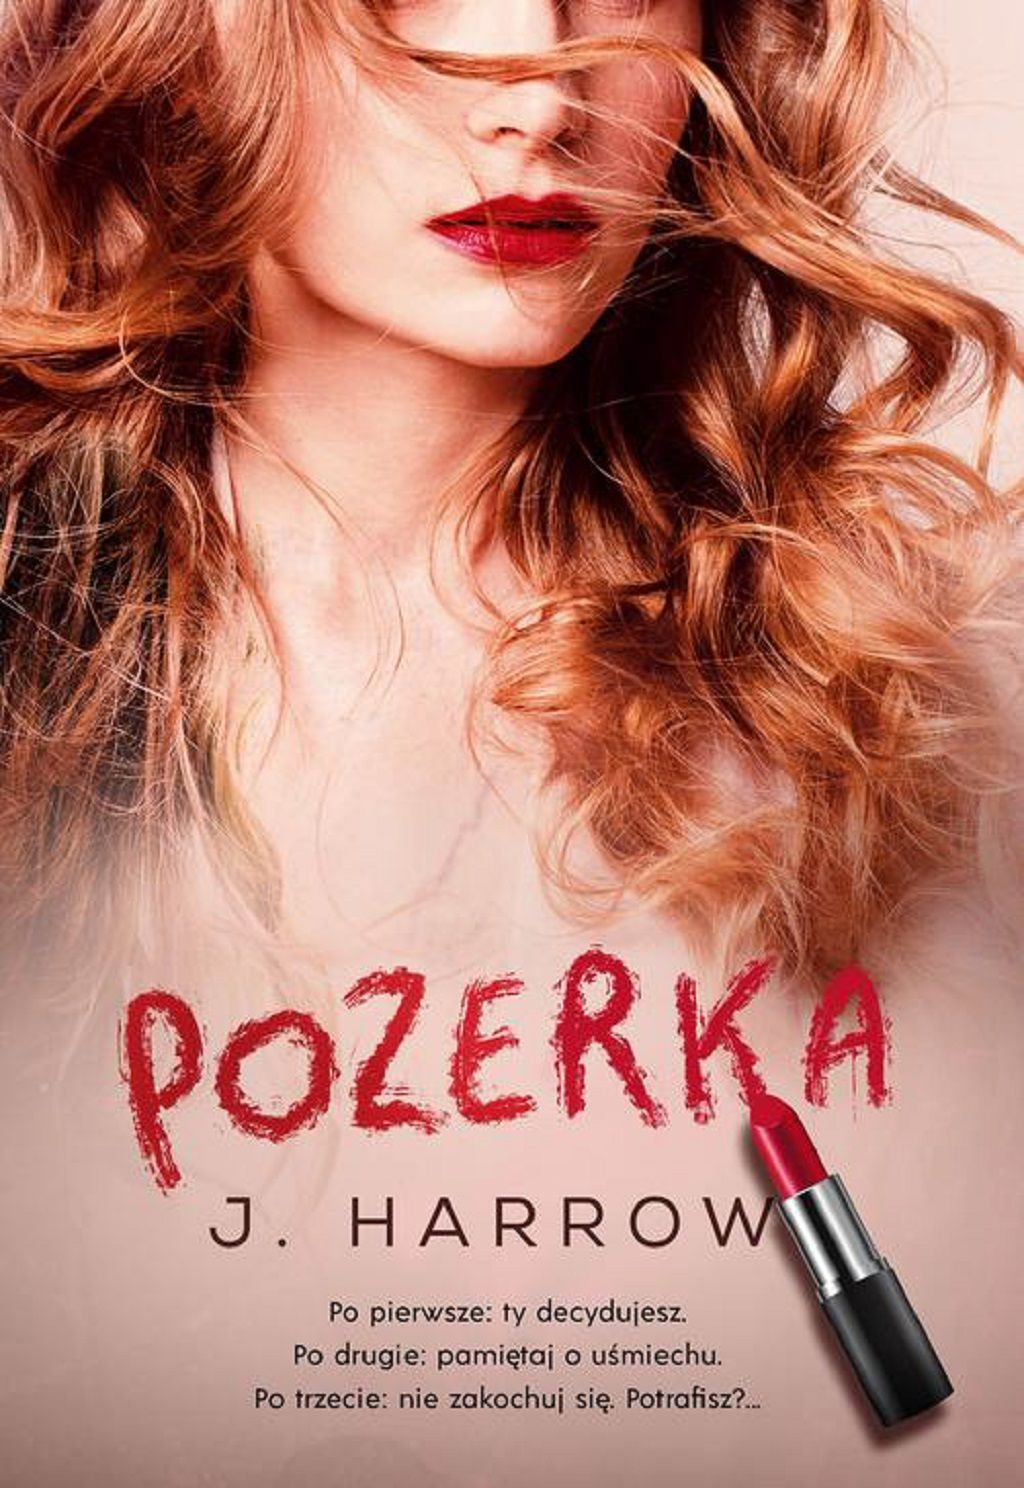 J. Harrow – Pozerka